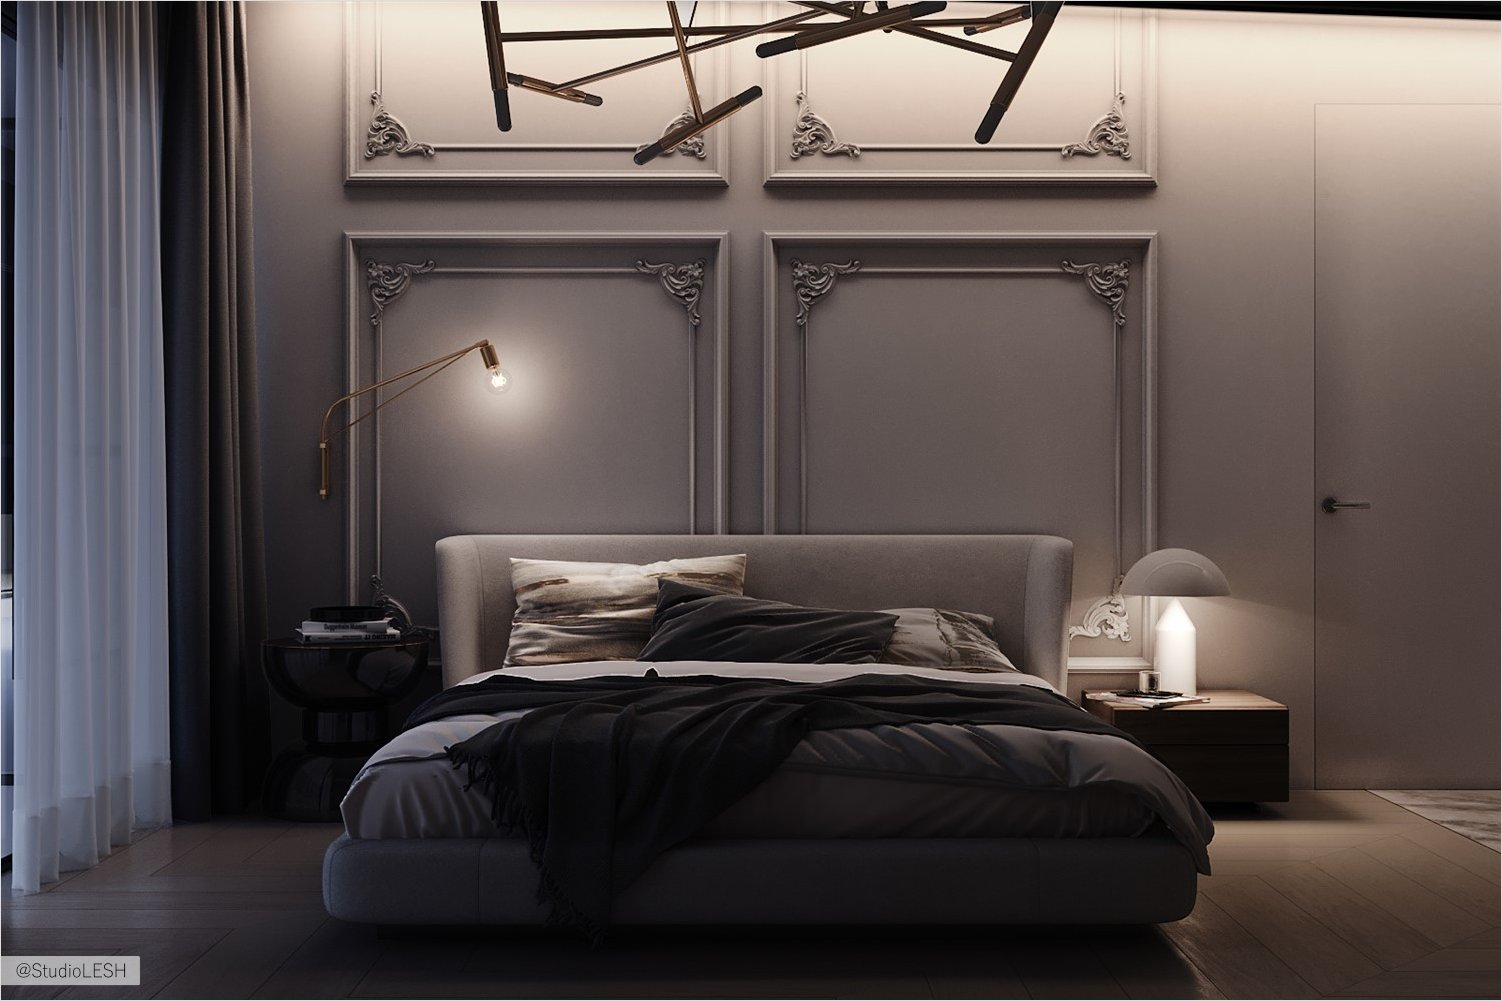 Evening view of the bedroom in gray shades